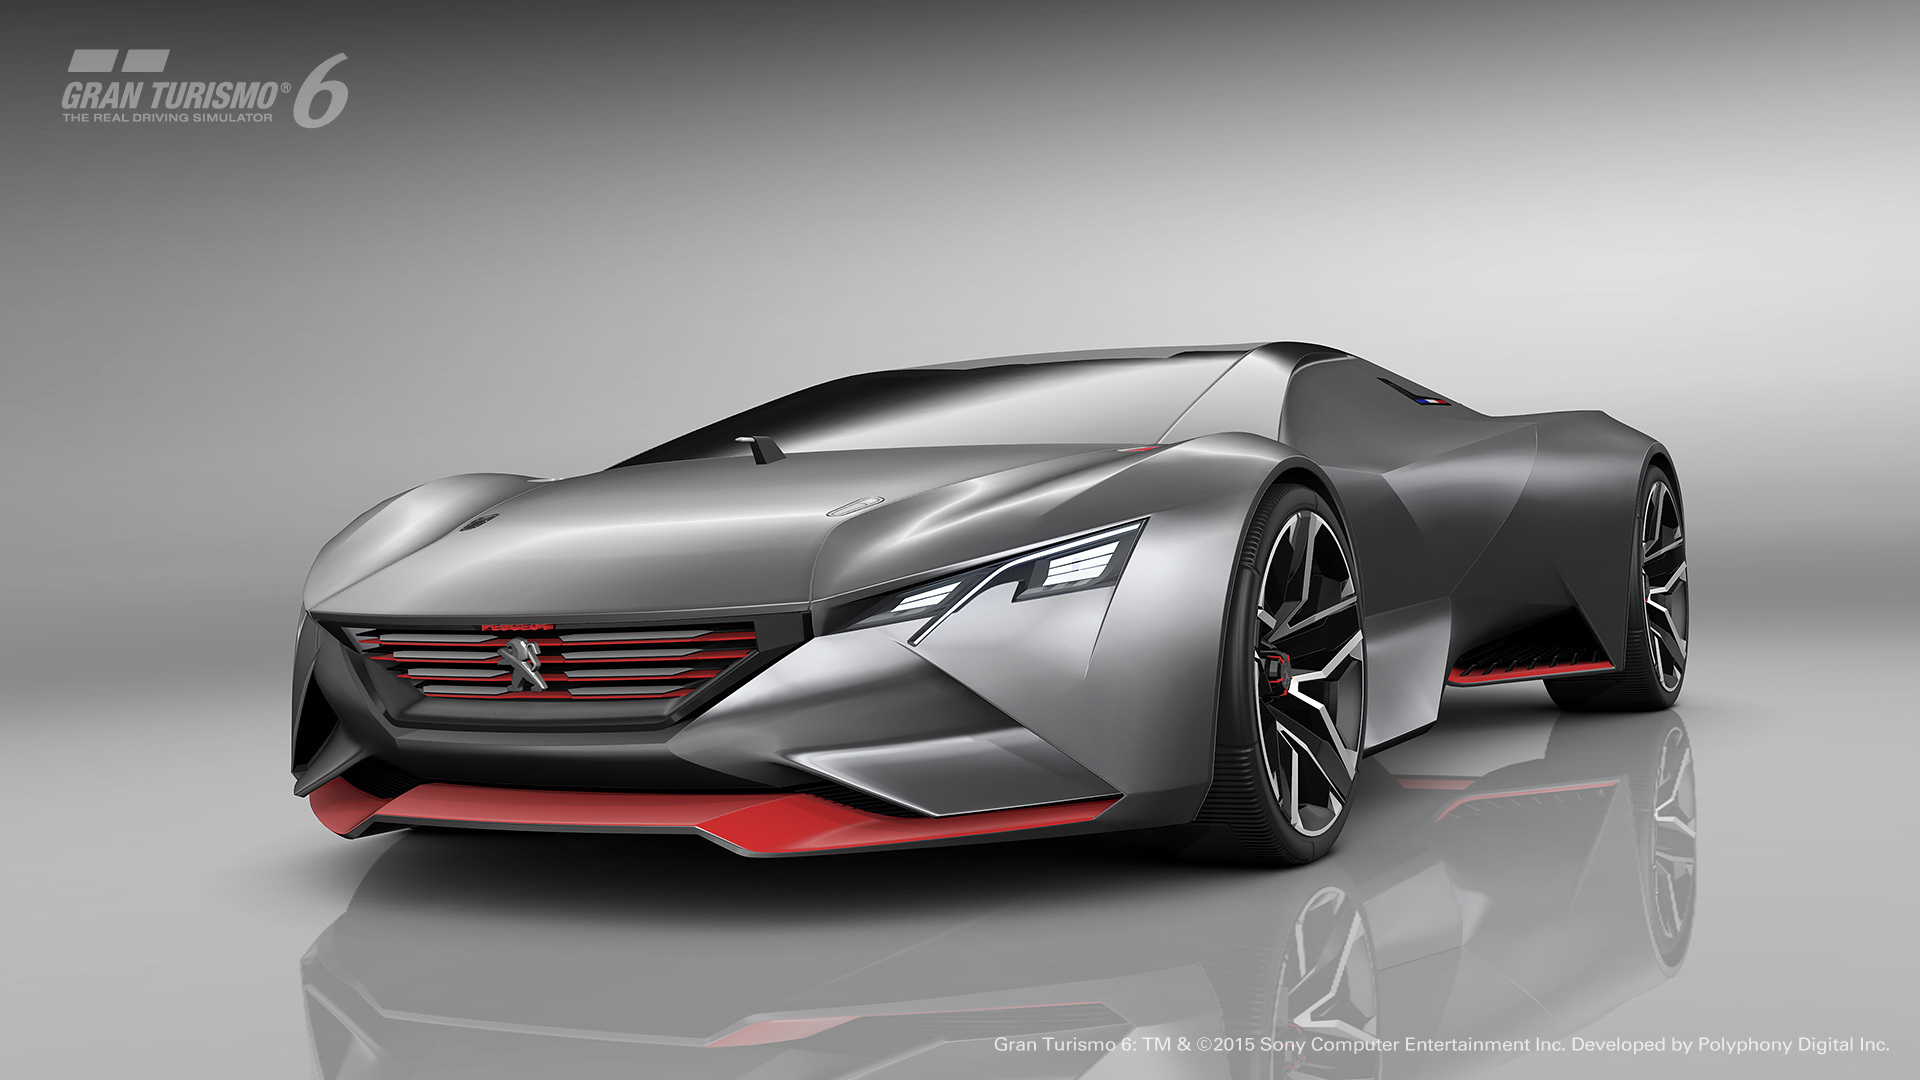 peugeot vision gt concept packs 875 hp news. Black Bedroom Furniture Sets. Home Design Ideas